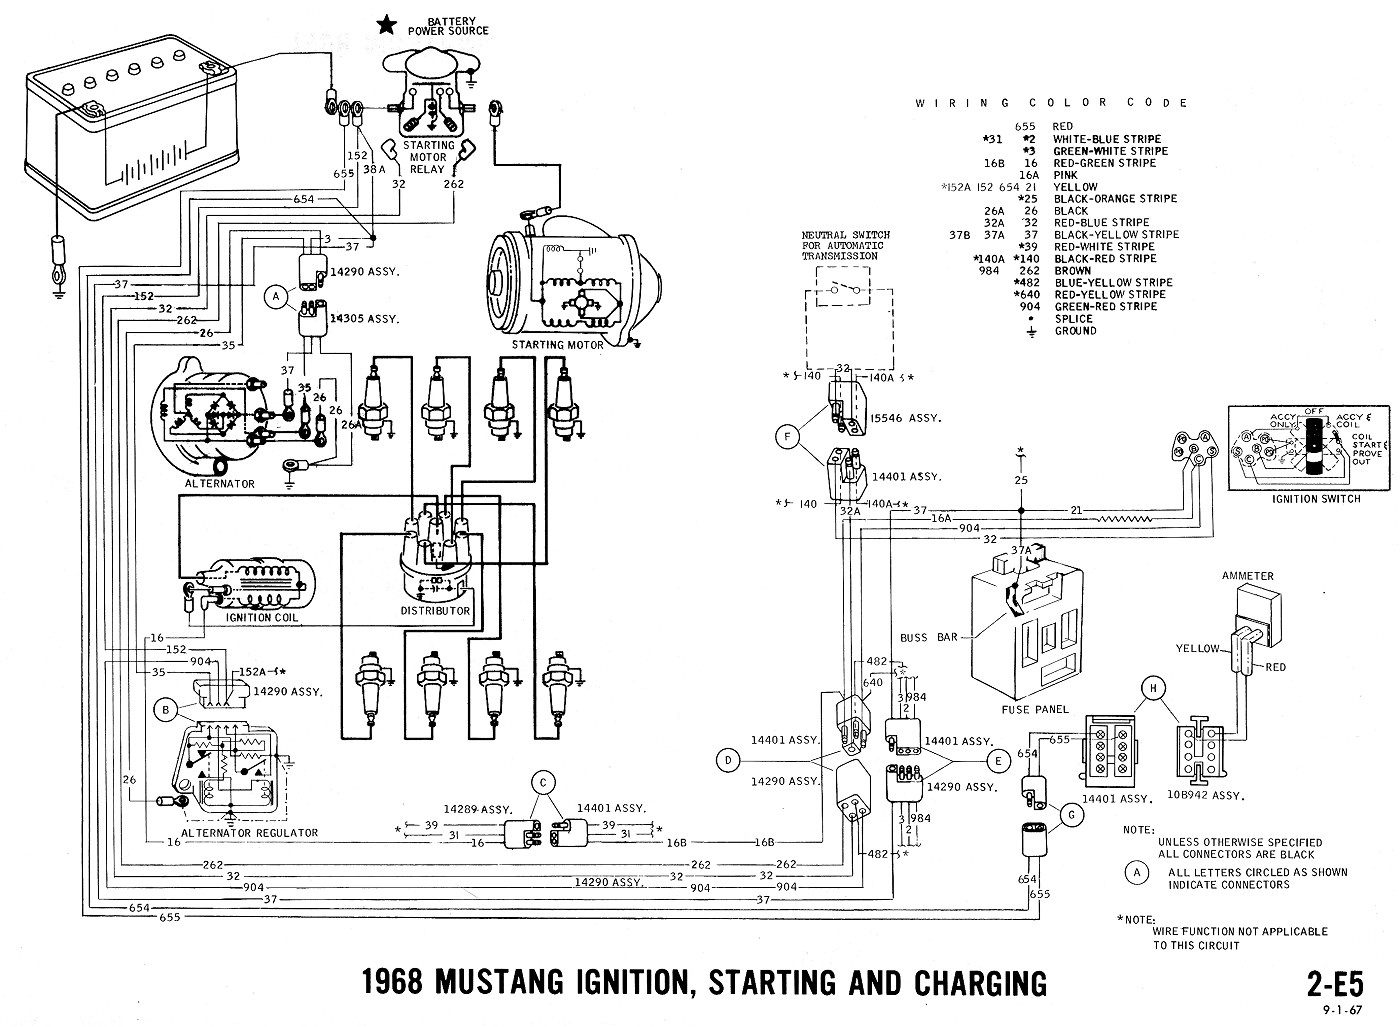 1984 Ford F350 Wiring Harness Diagrams Simple Guide About Pickup Diagram 1968 Mustang Evolving Software